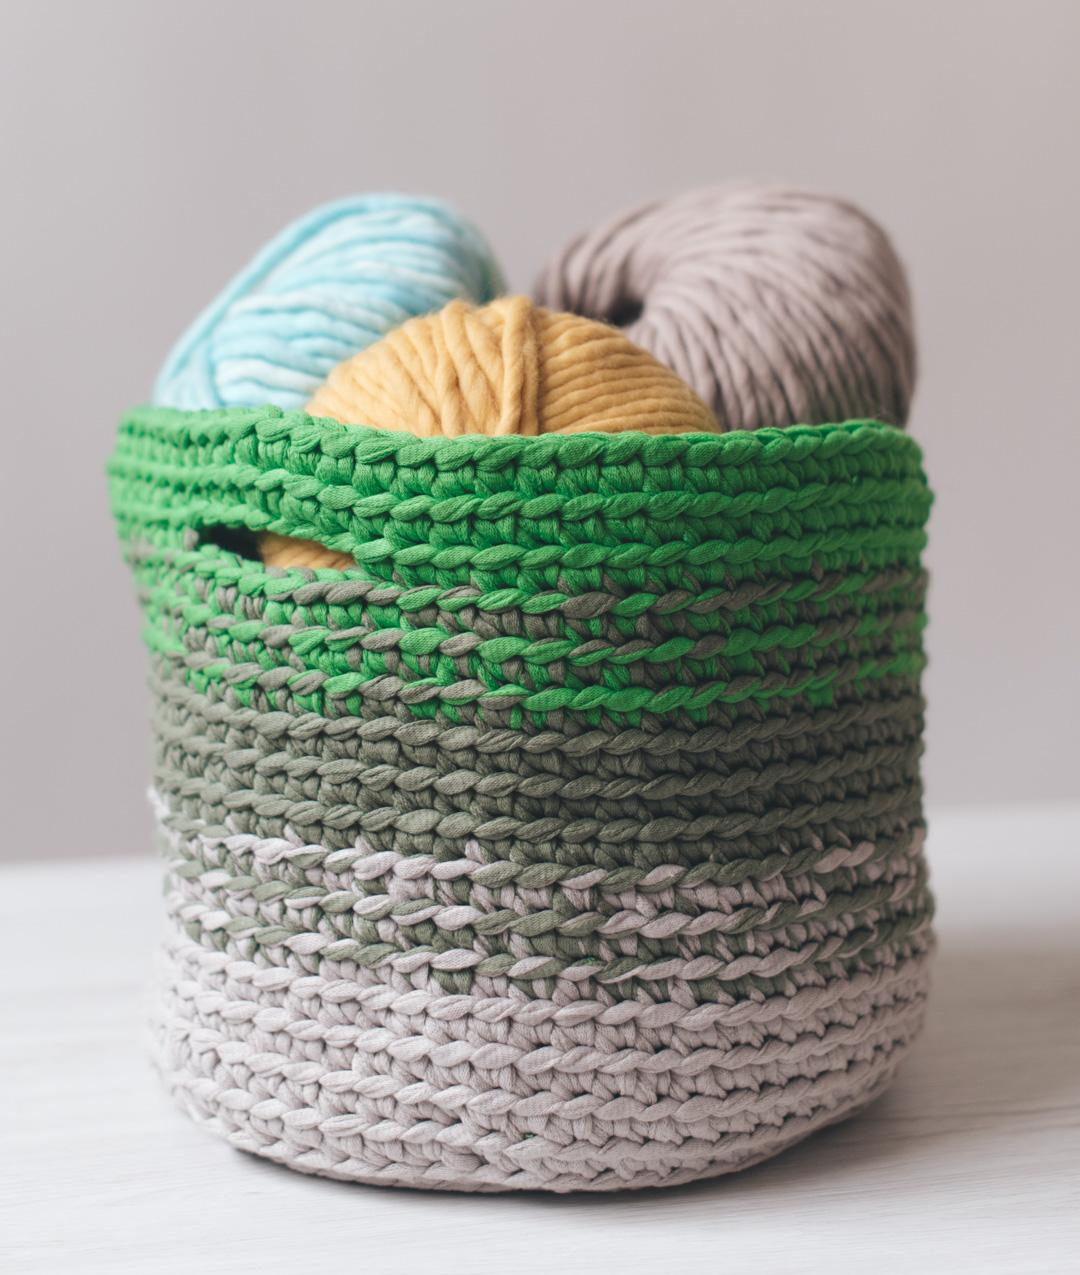 Homeware - Cotton - SHADE BASKET - 1